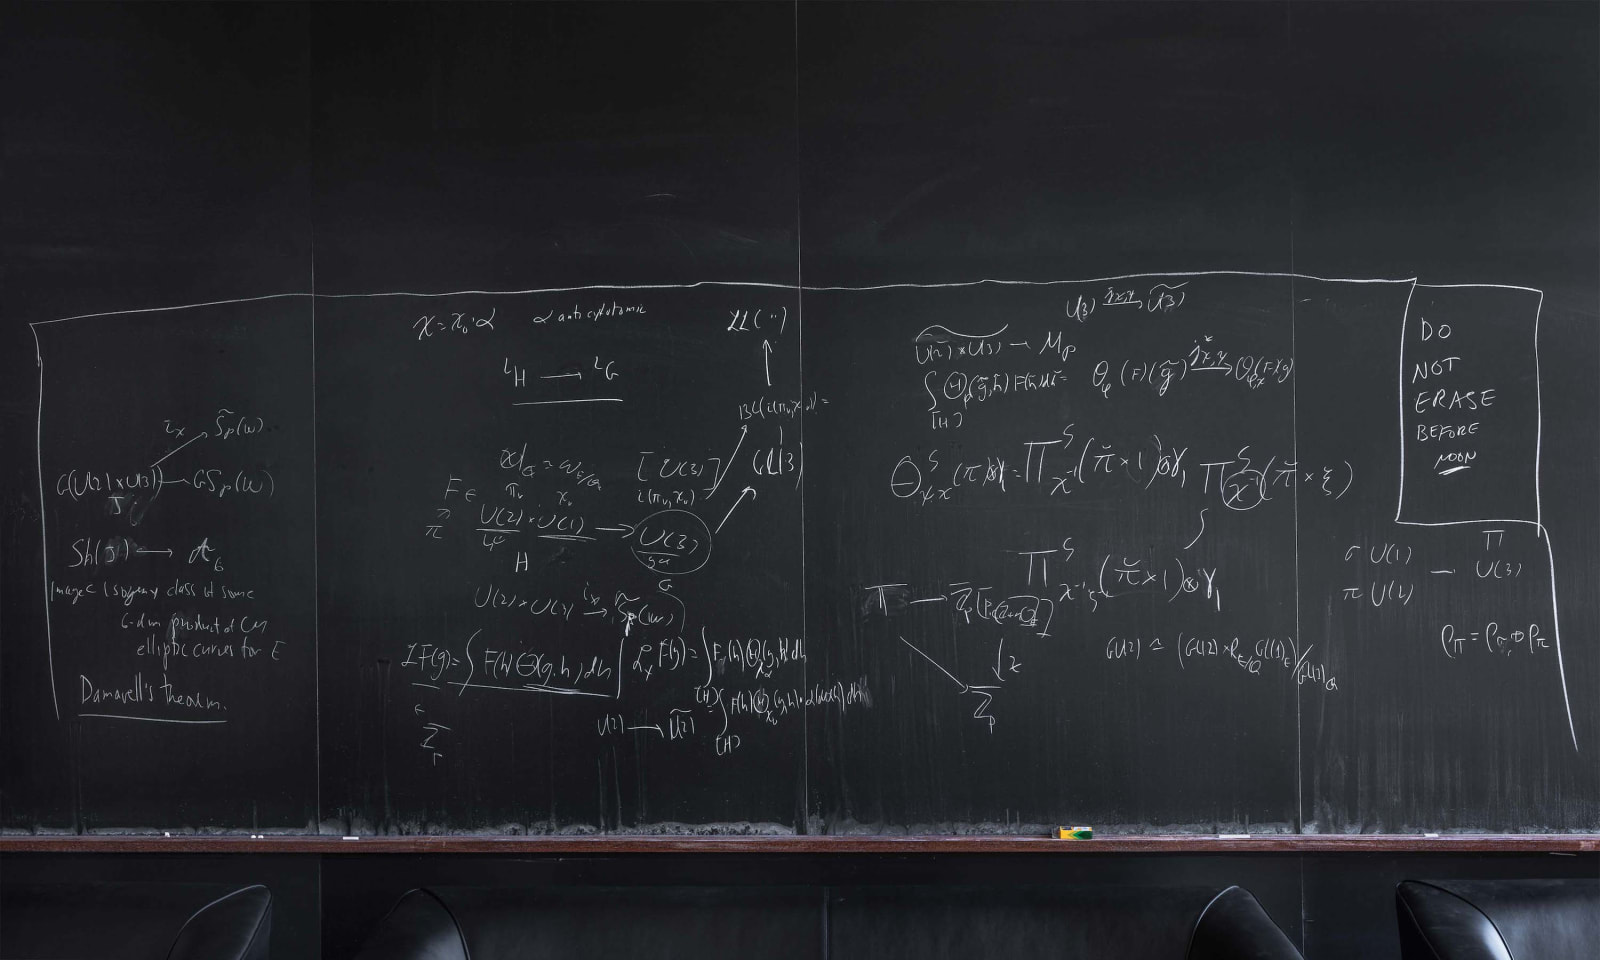 Blackboard with mathematical formulas by Michael Harris, Columbia University, from the Do Not Erase series by Jessica Wynne